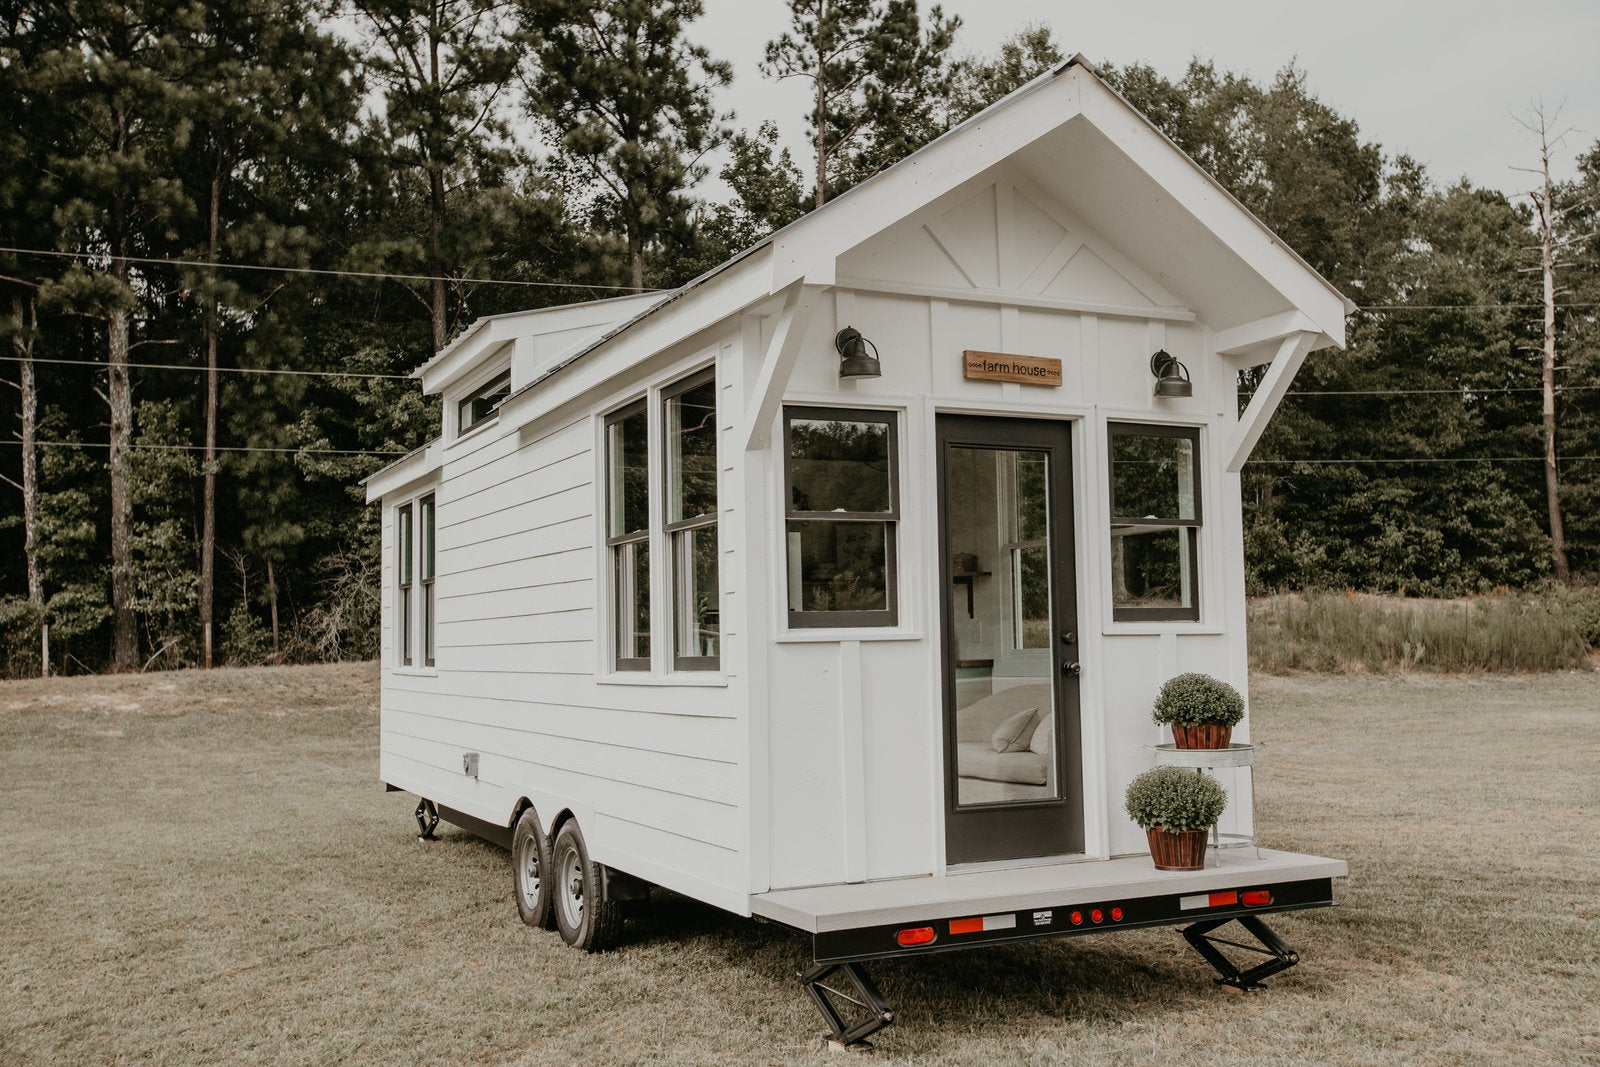 Lamon Luther Tiny House Giveaway